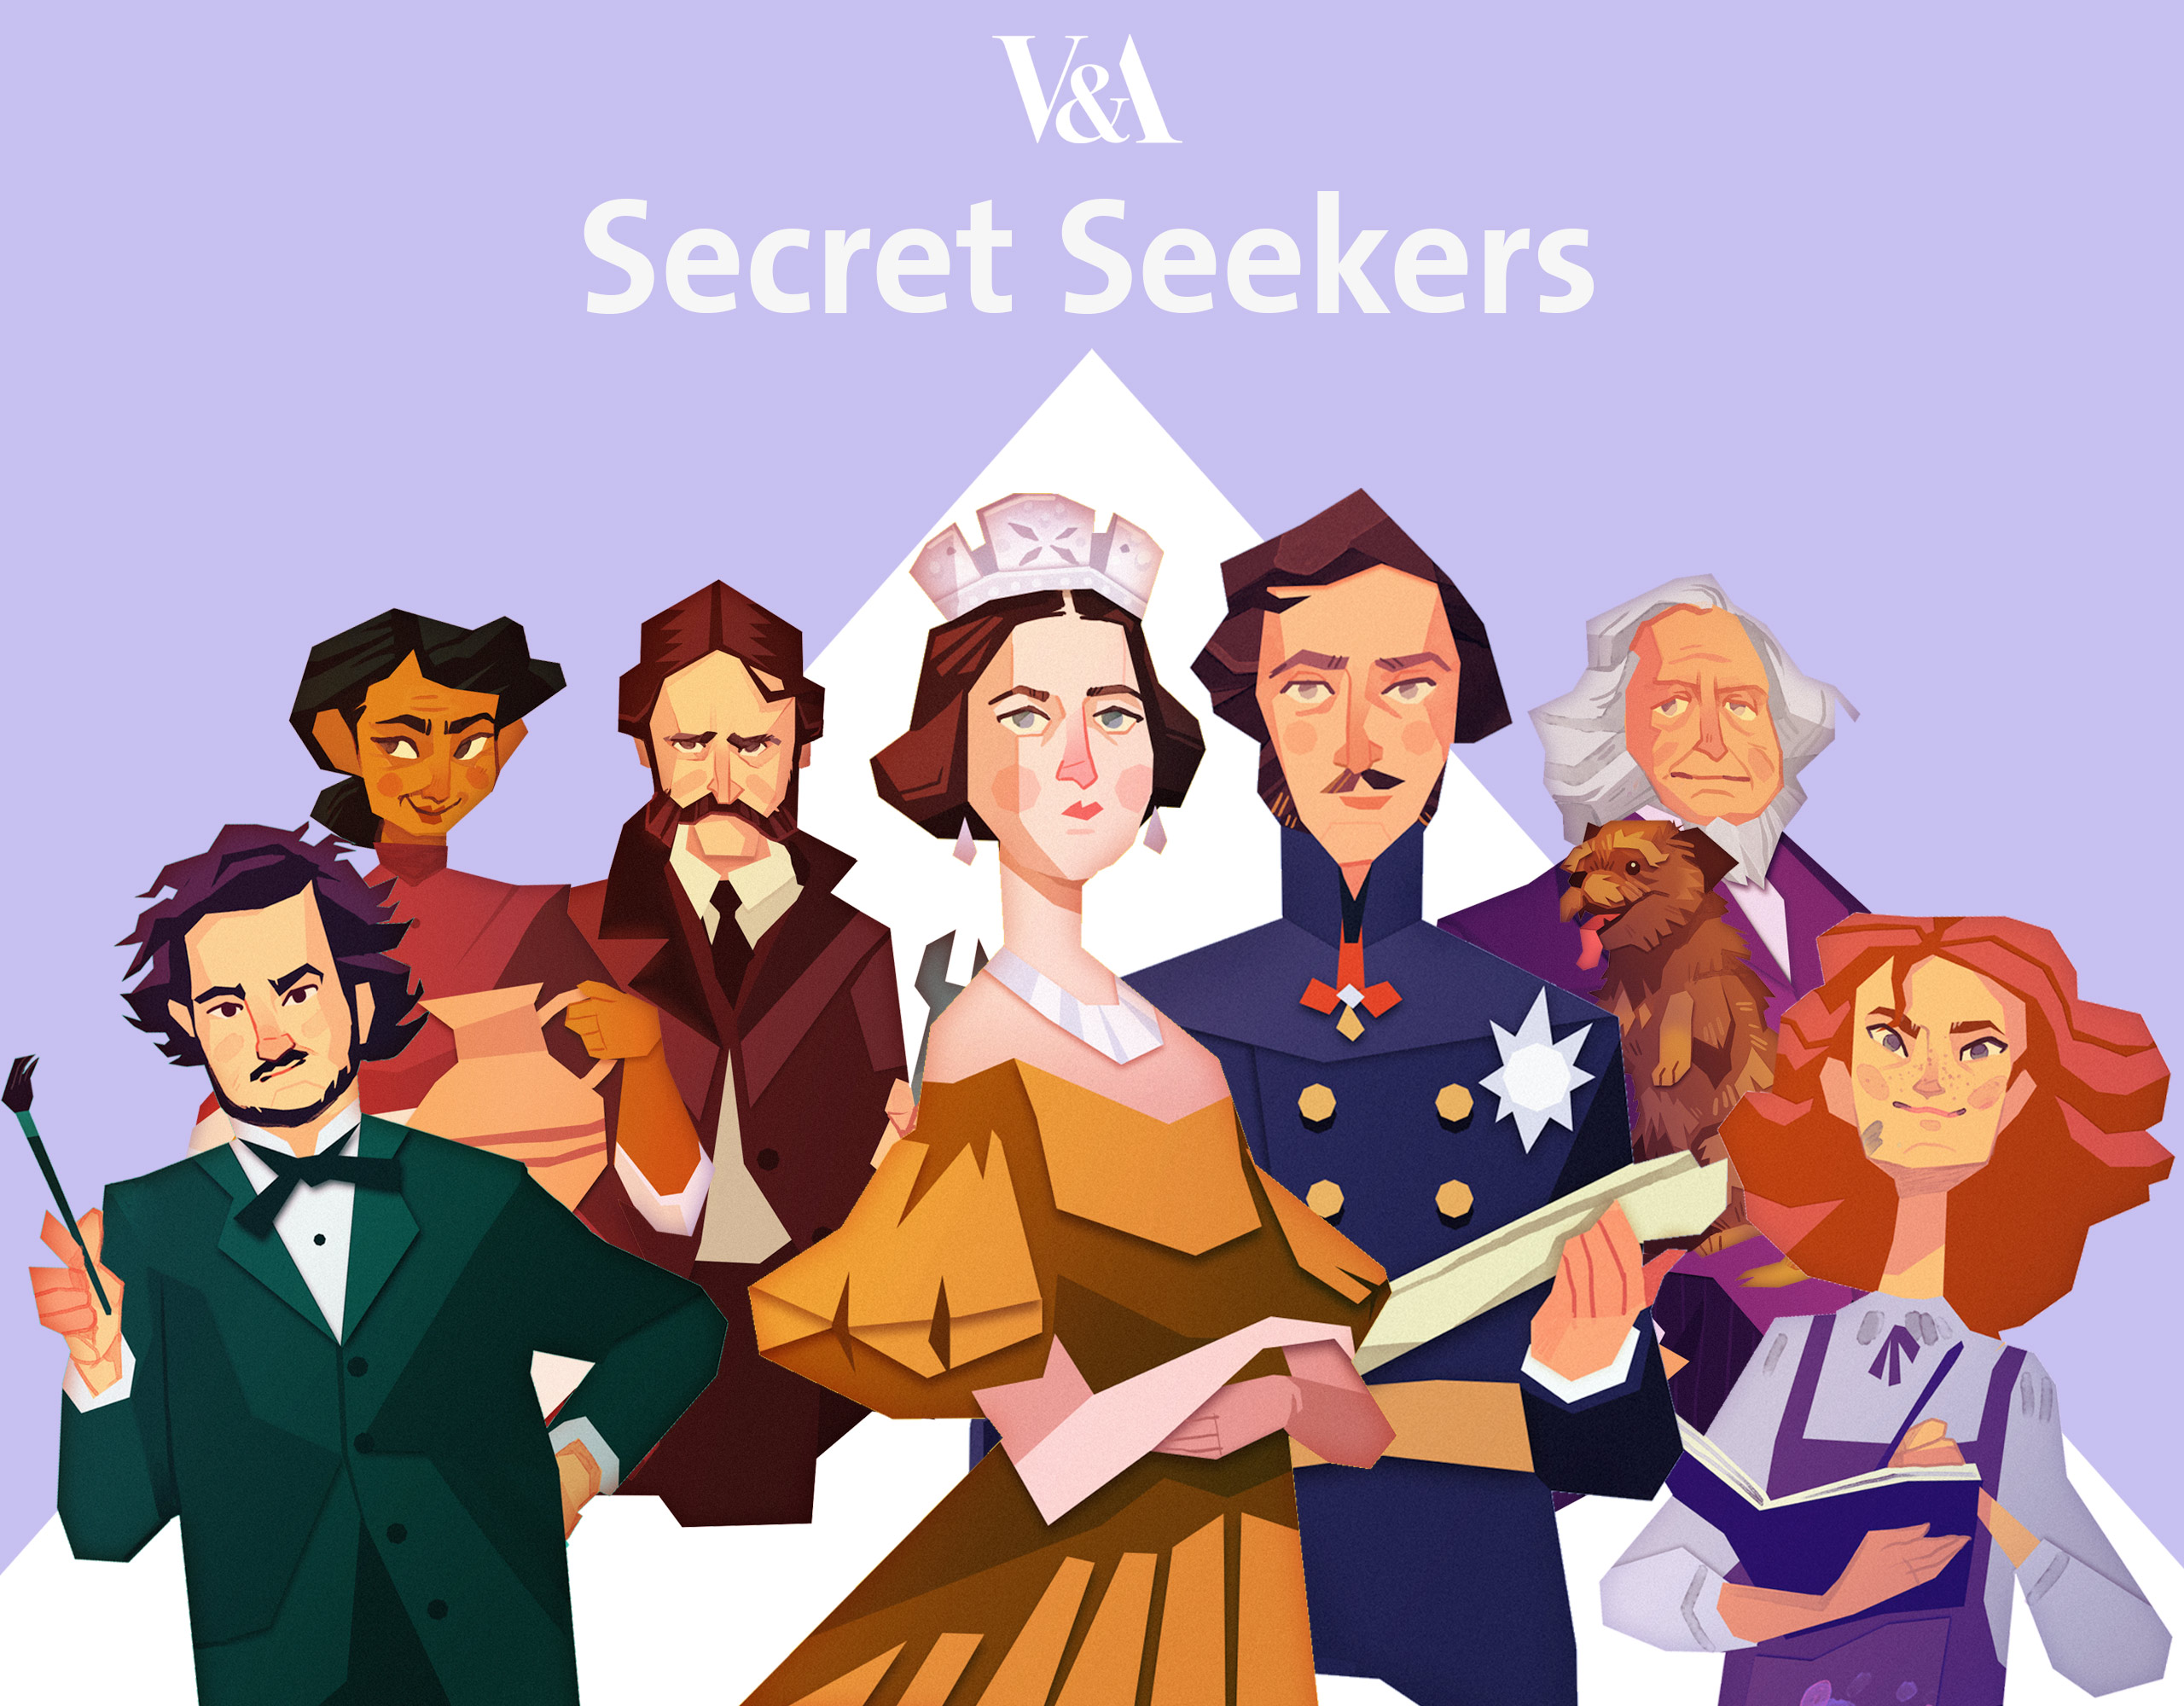 V&A Secret Seekers © Victoria and Albert Museum